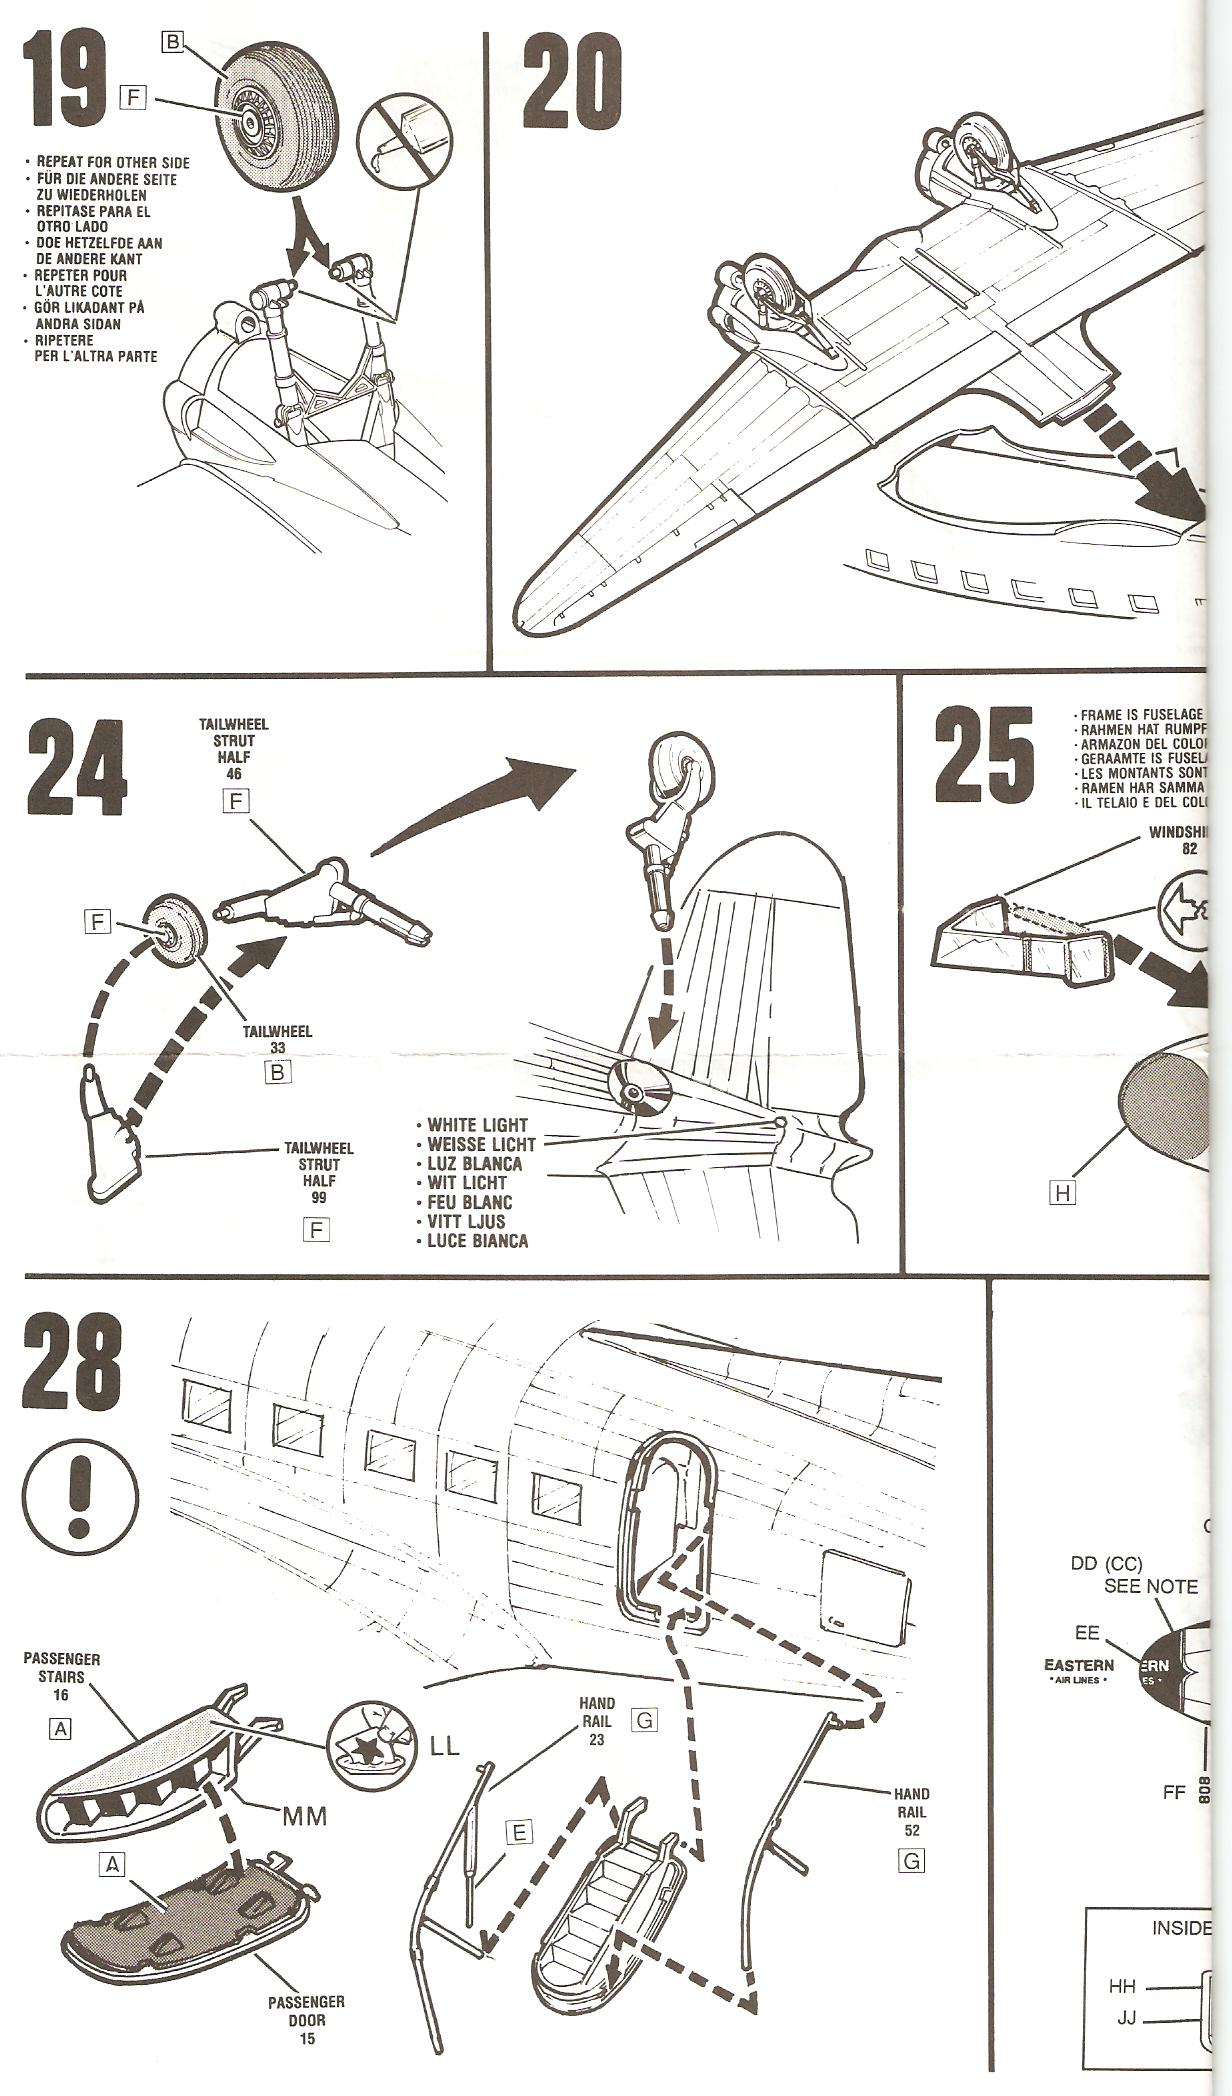 Boarding ladder for Monogram 1/48th scale C-47